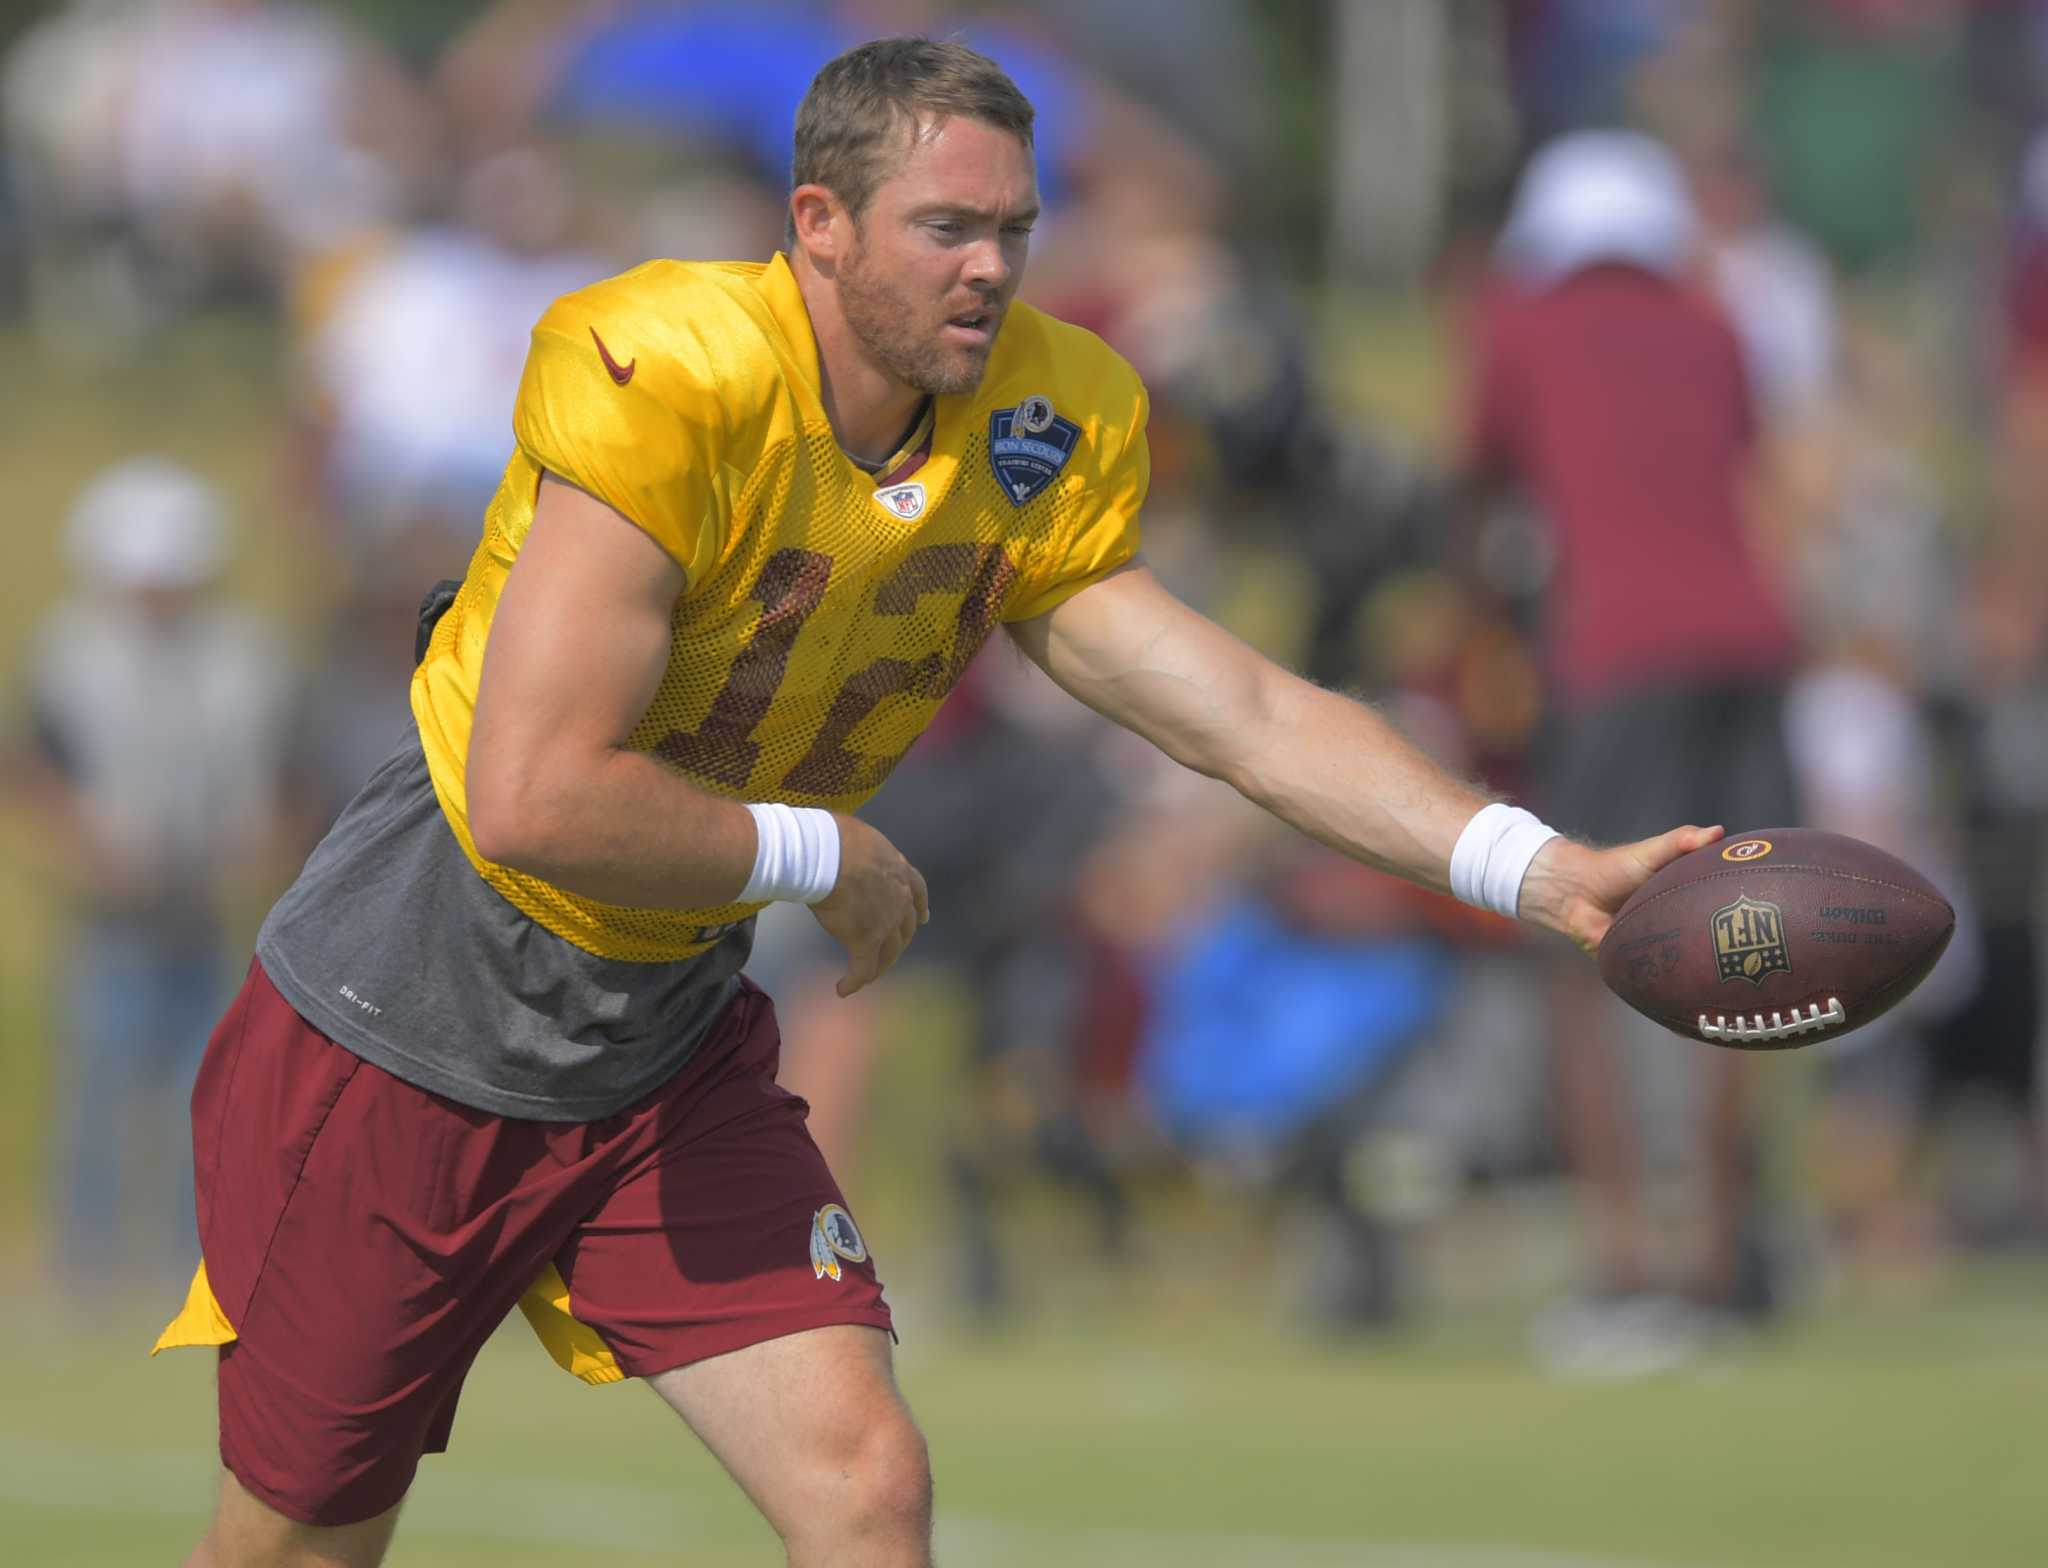 Colt McCoy's leg still isn't right and it might have cost him a chance to win Redskins QB job